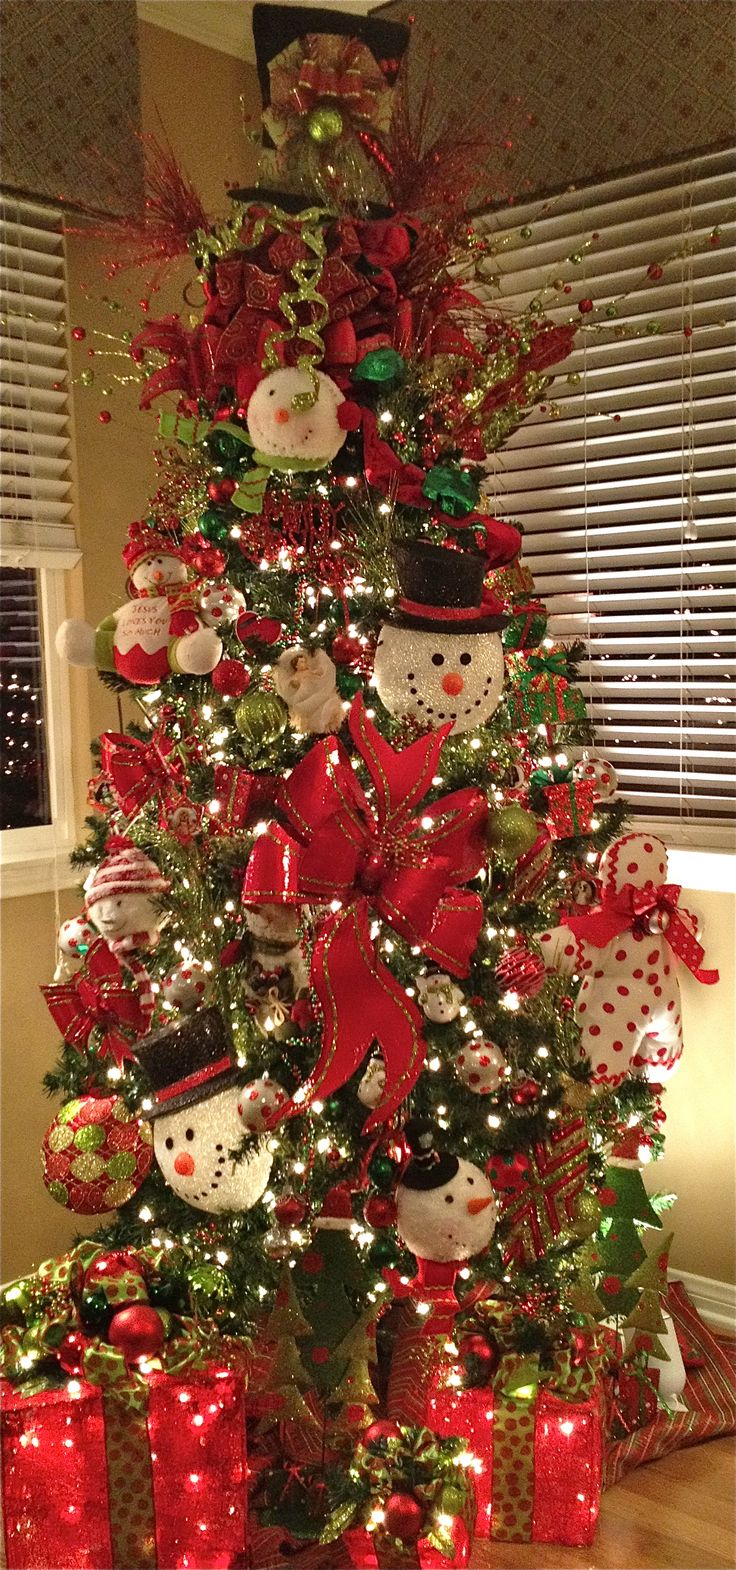 Uncategorized christmas decorations amp holiday decorations - Christmas Tree Designs And Decor Ideas For 2014 It S That Time Of Year Again Christmas Magic Is Lingering In The Air As Gear Up For Our Turkey Dinners